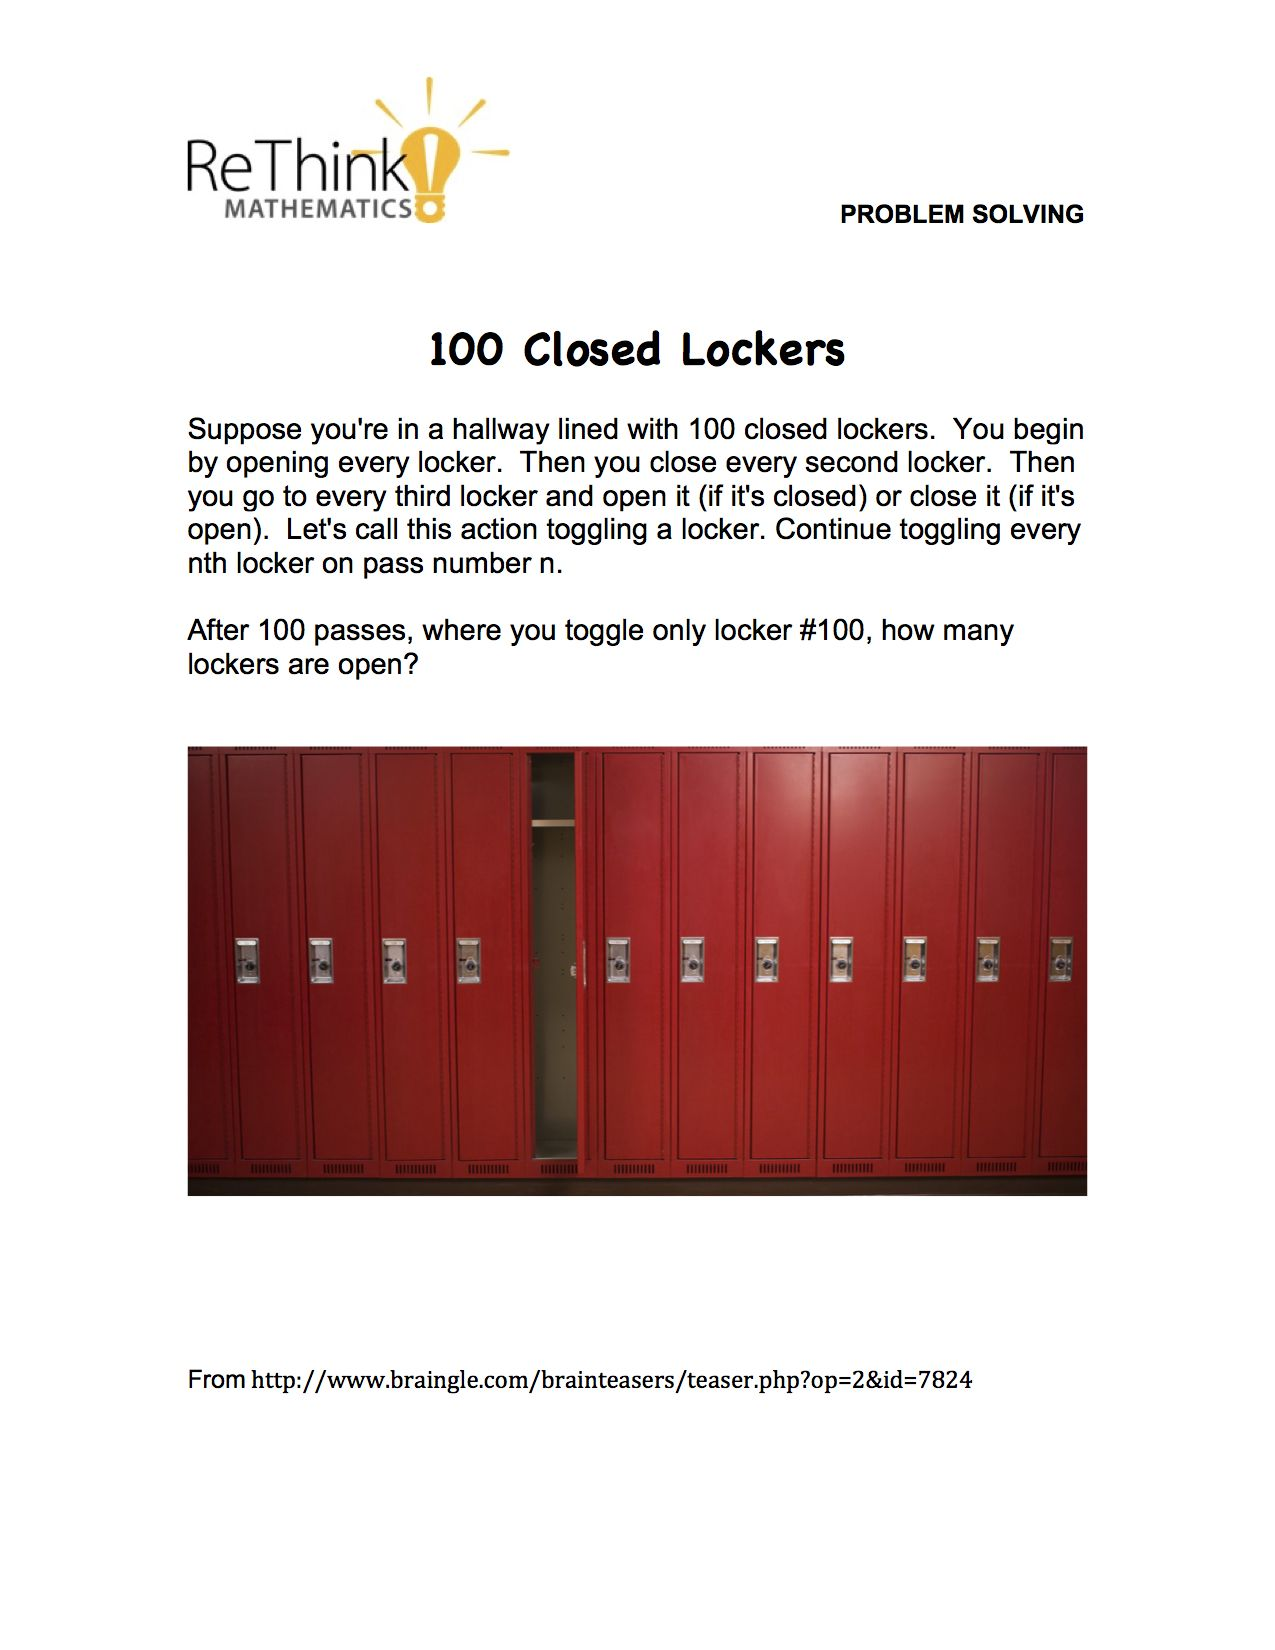 Suppose You Re In A Hallway Lined With 100 Closed Lockers